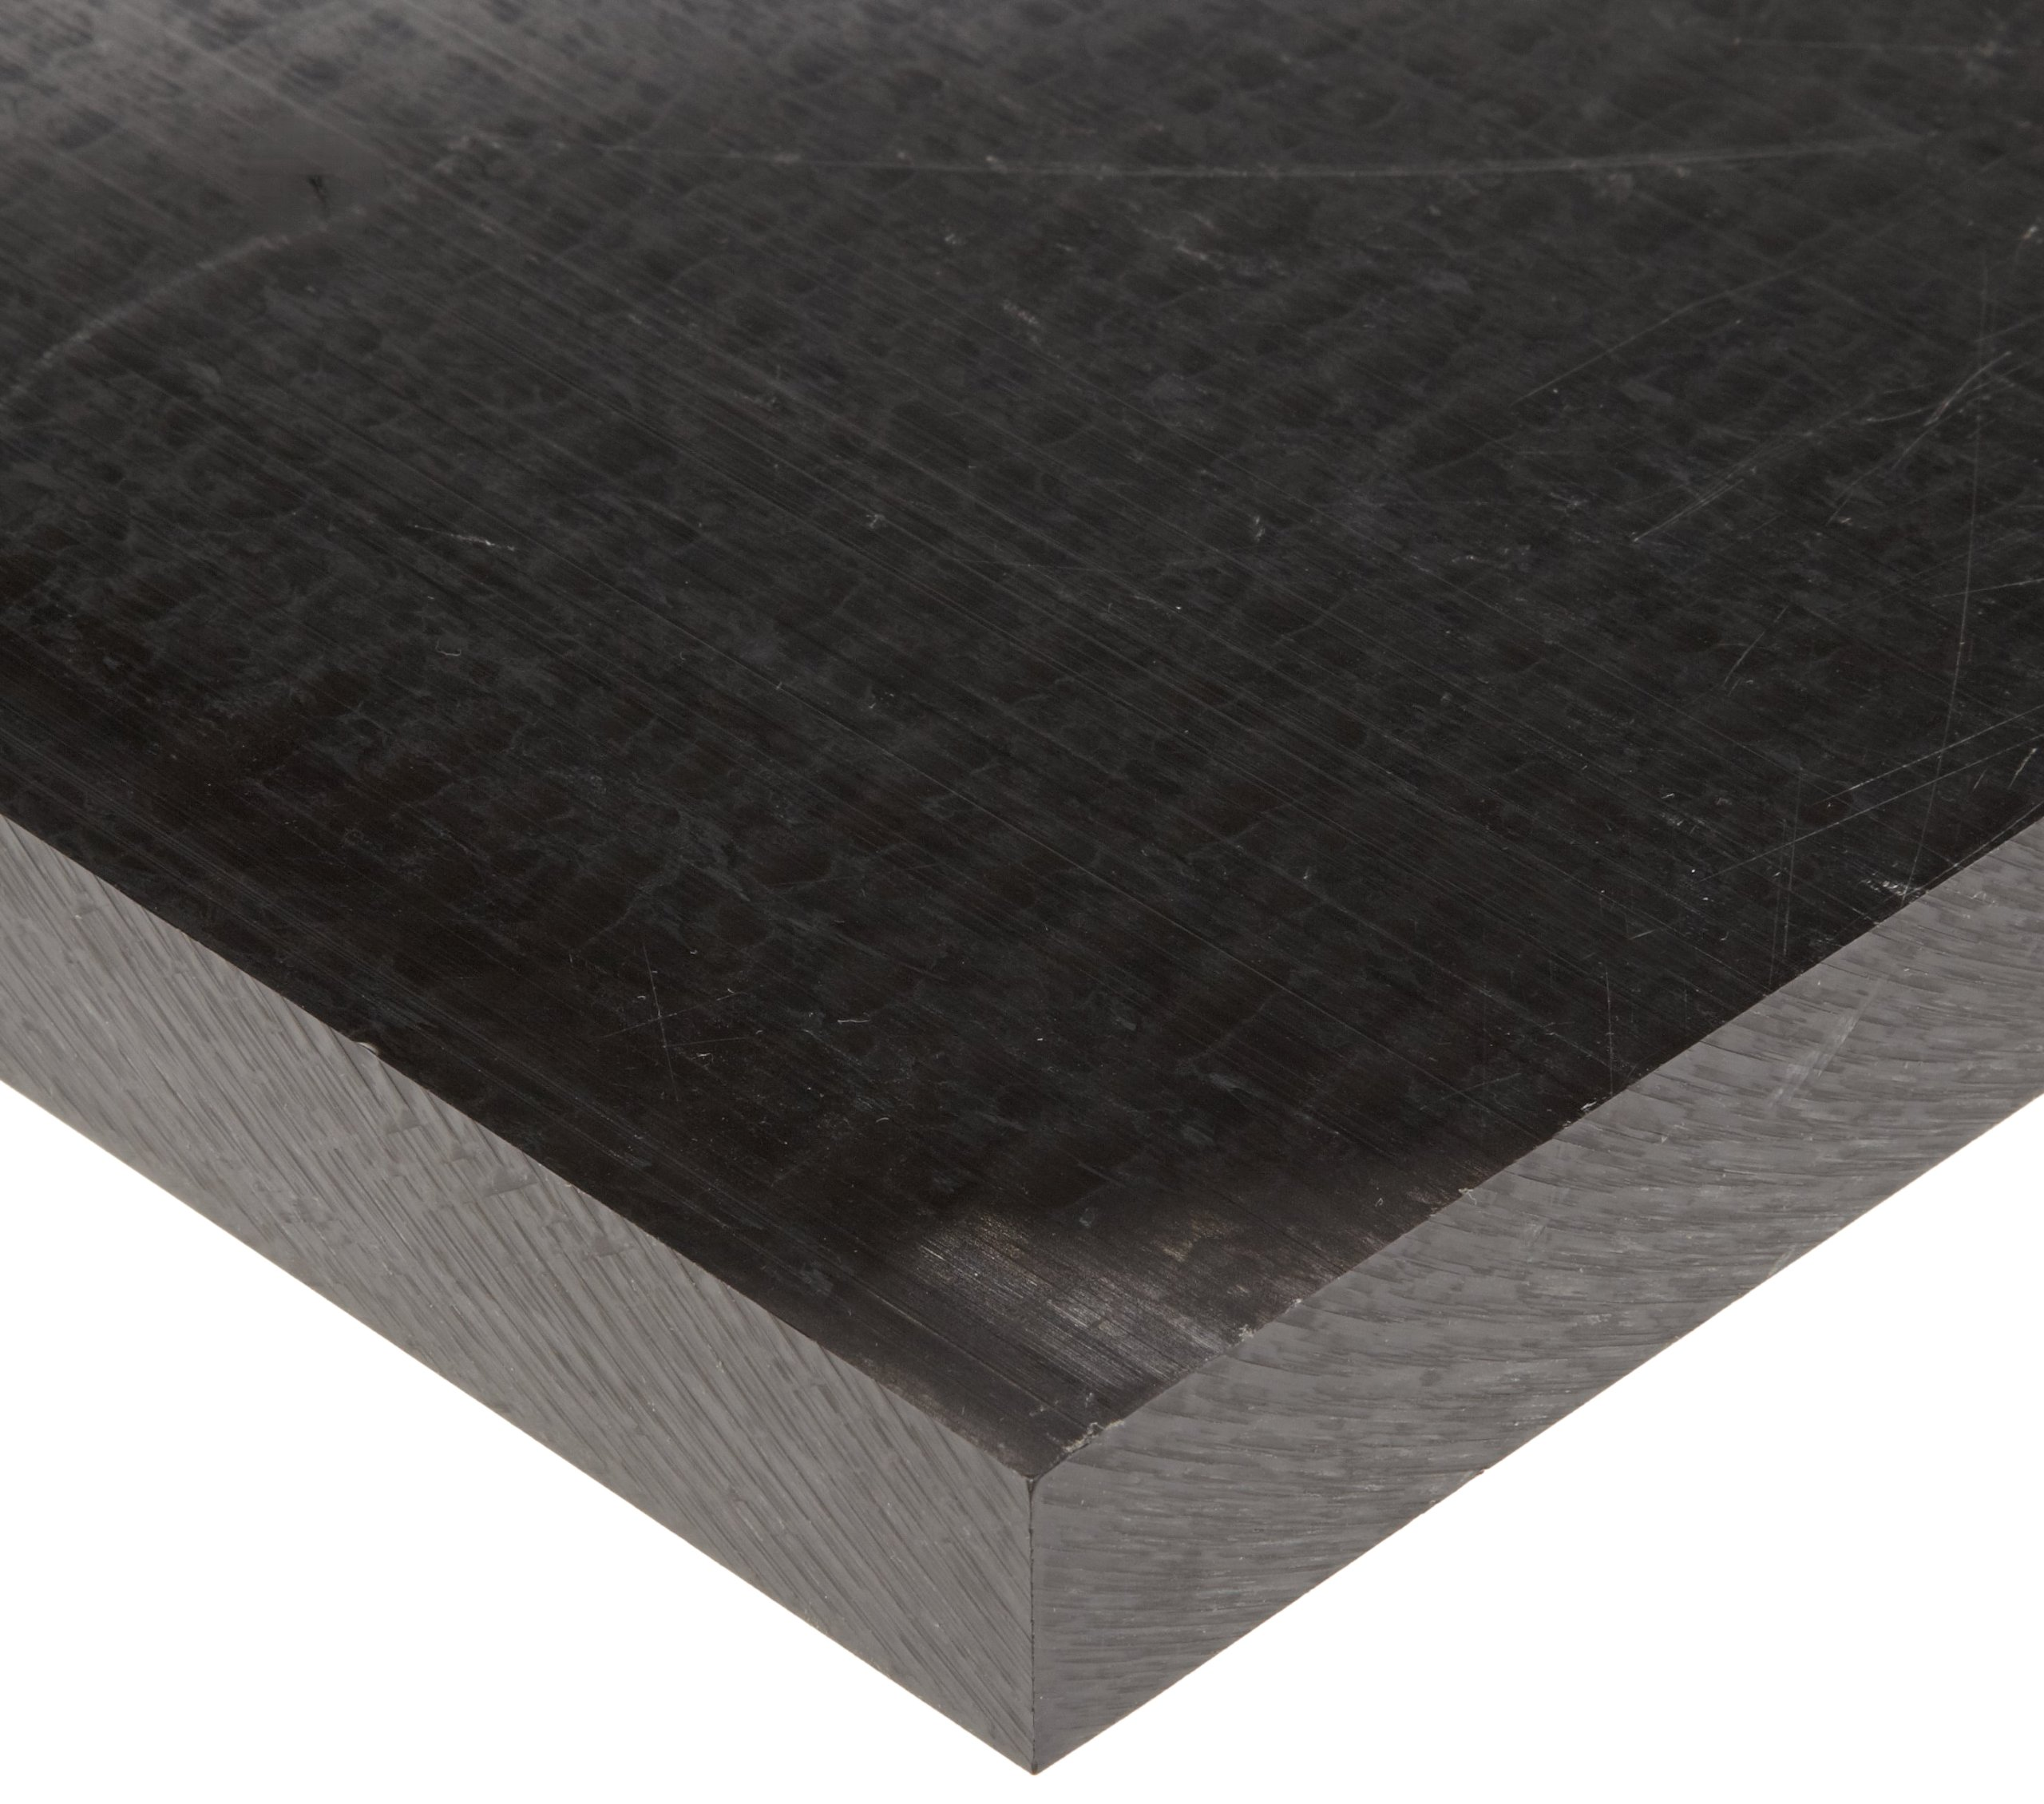 Acetal Copolymer Sheet, Opaque Black, Standard Tolerance, ASTM D6100/UL 94HB, 0.125'' Thickness, 12'' Width, 12'' Length